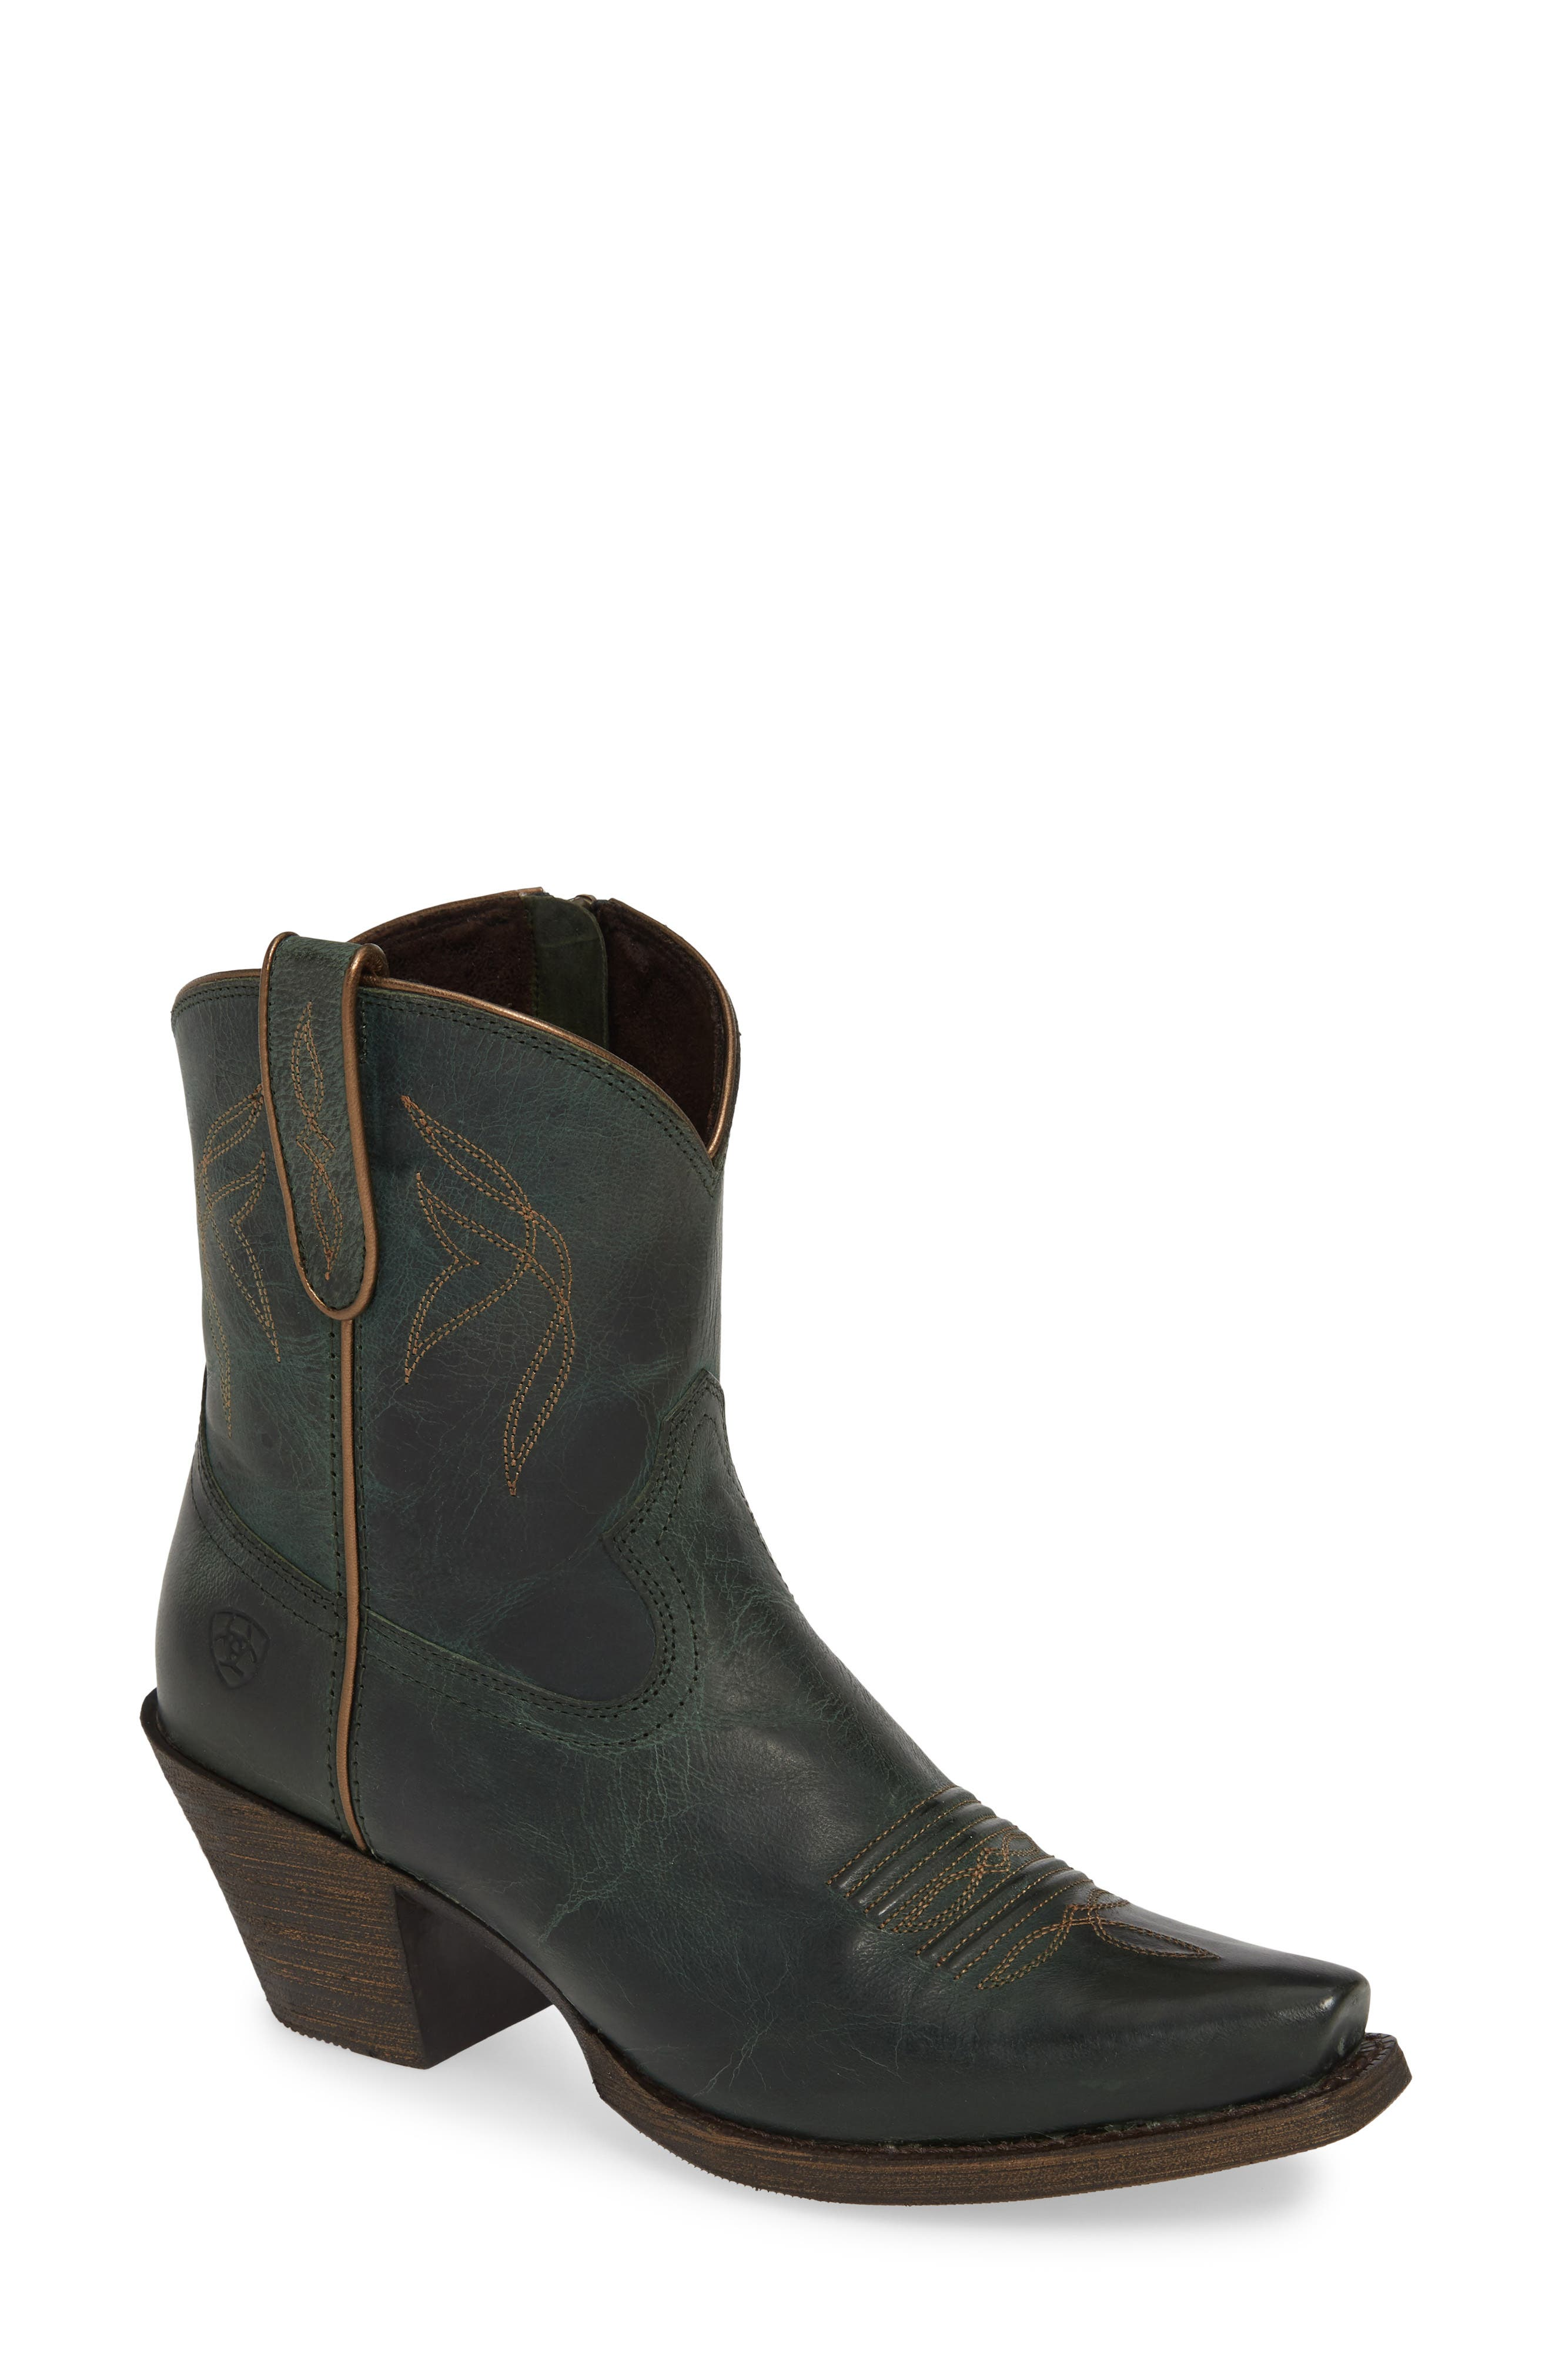 Ariat Lovely Western Boot, Green